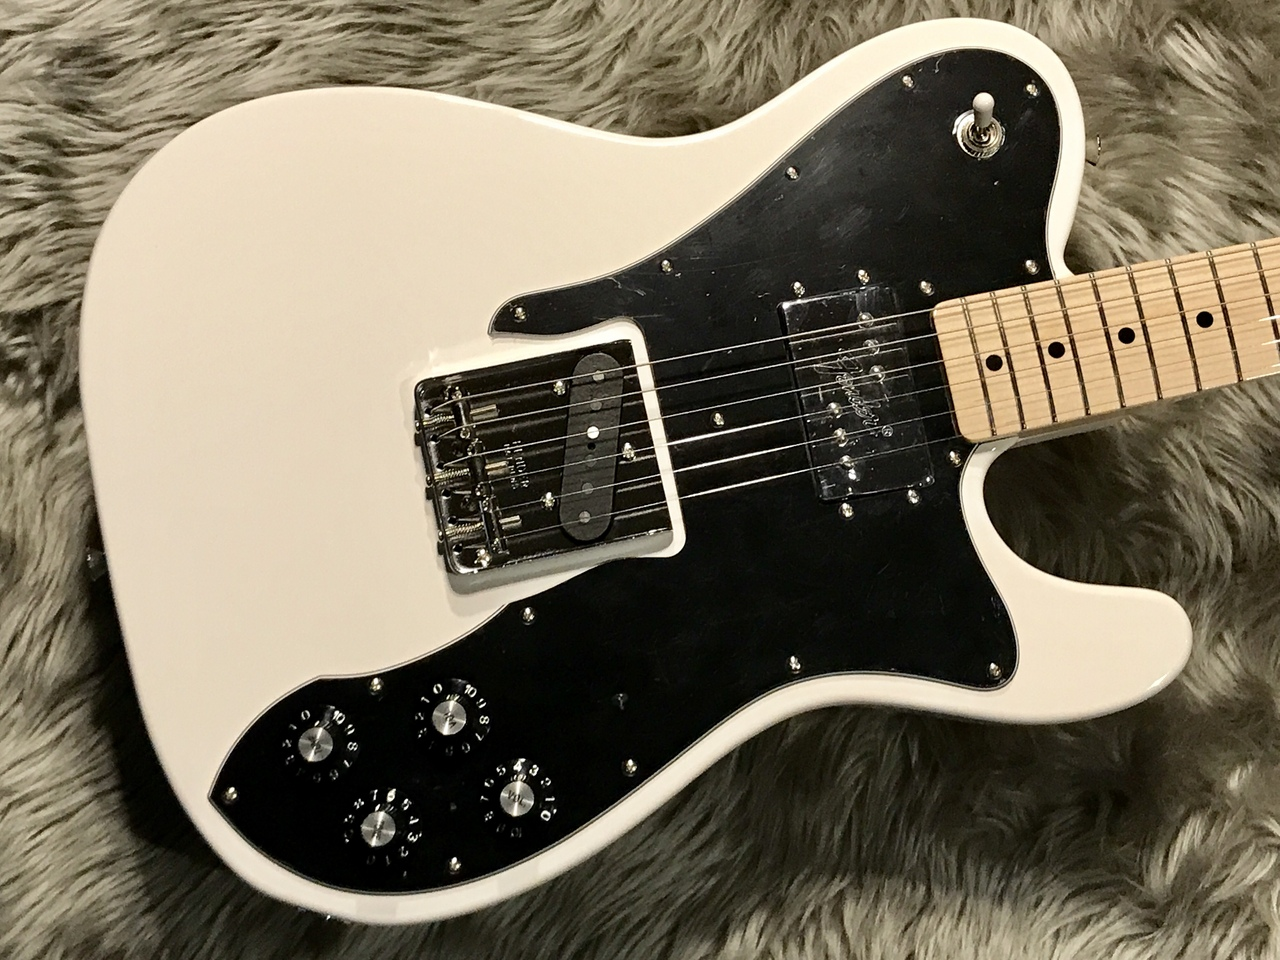 MADE IN JAPAN TRADITIONAL 70S TELECASTER® CUSTOMのボディトップ-アップ画像